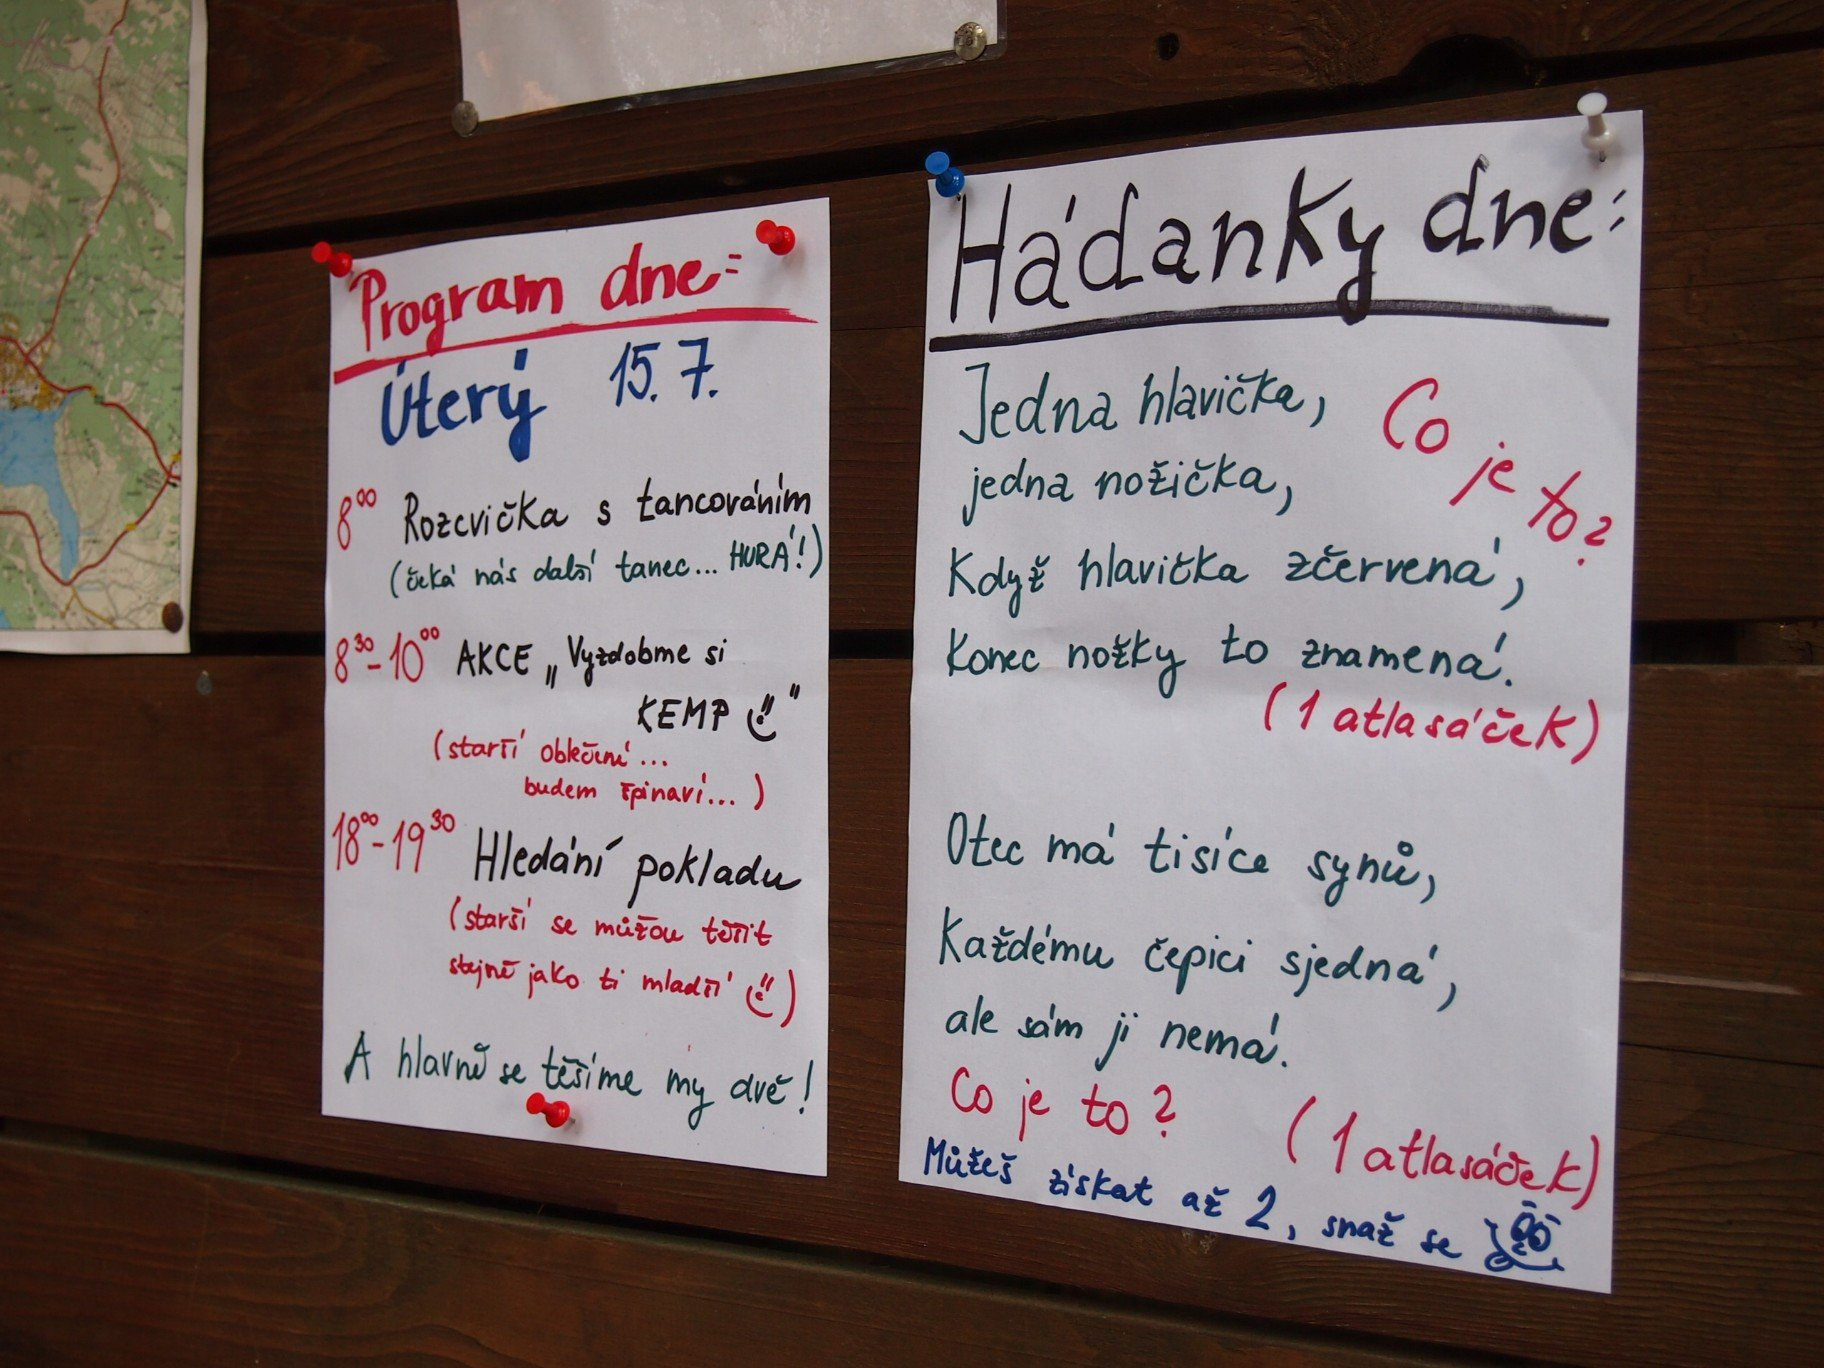 Pakoštane familly week program